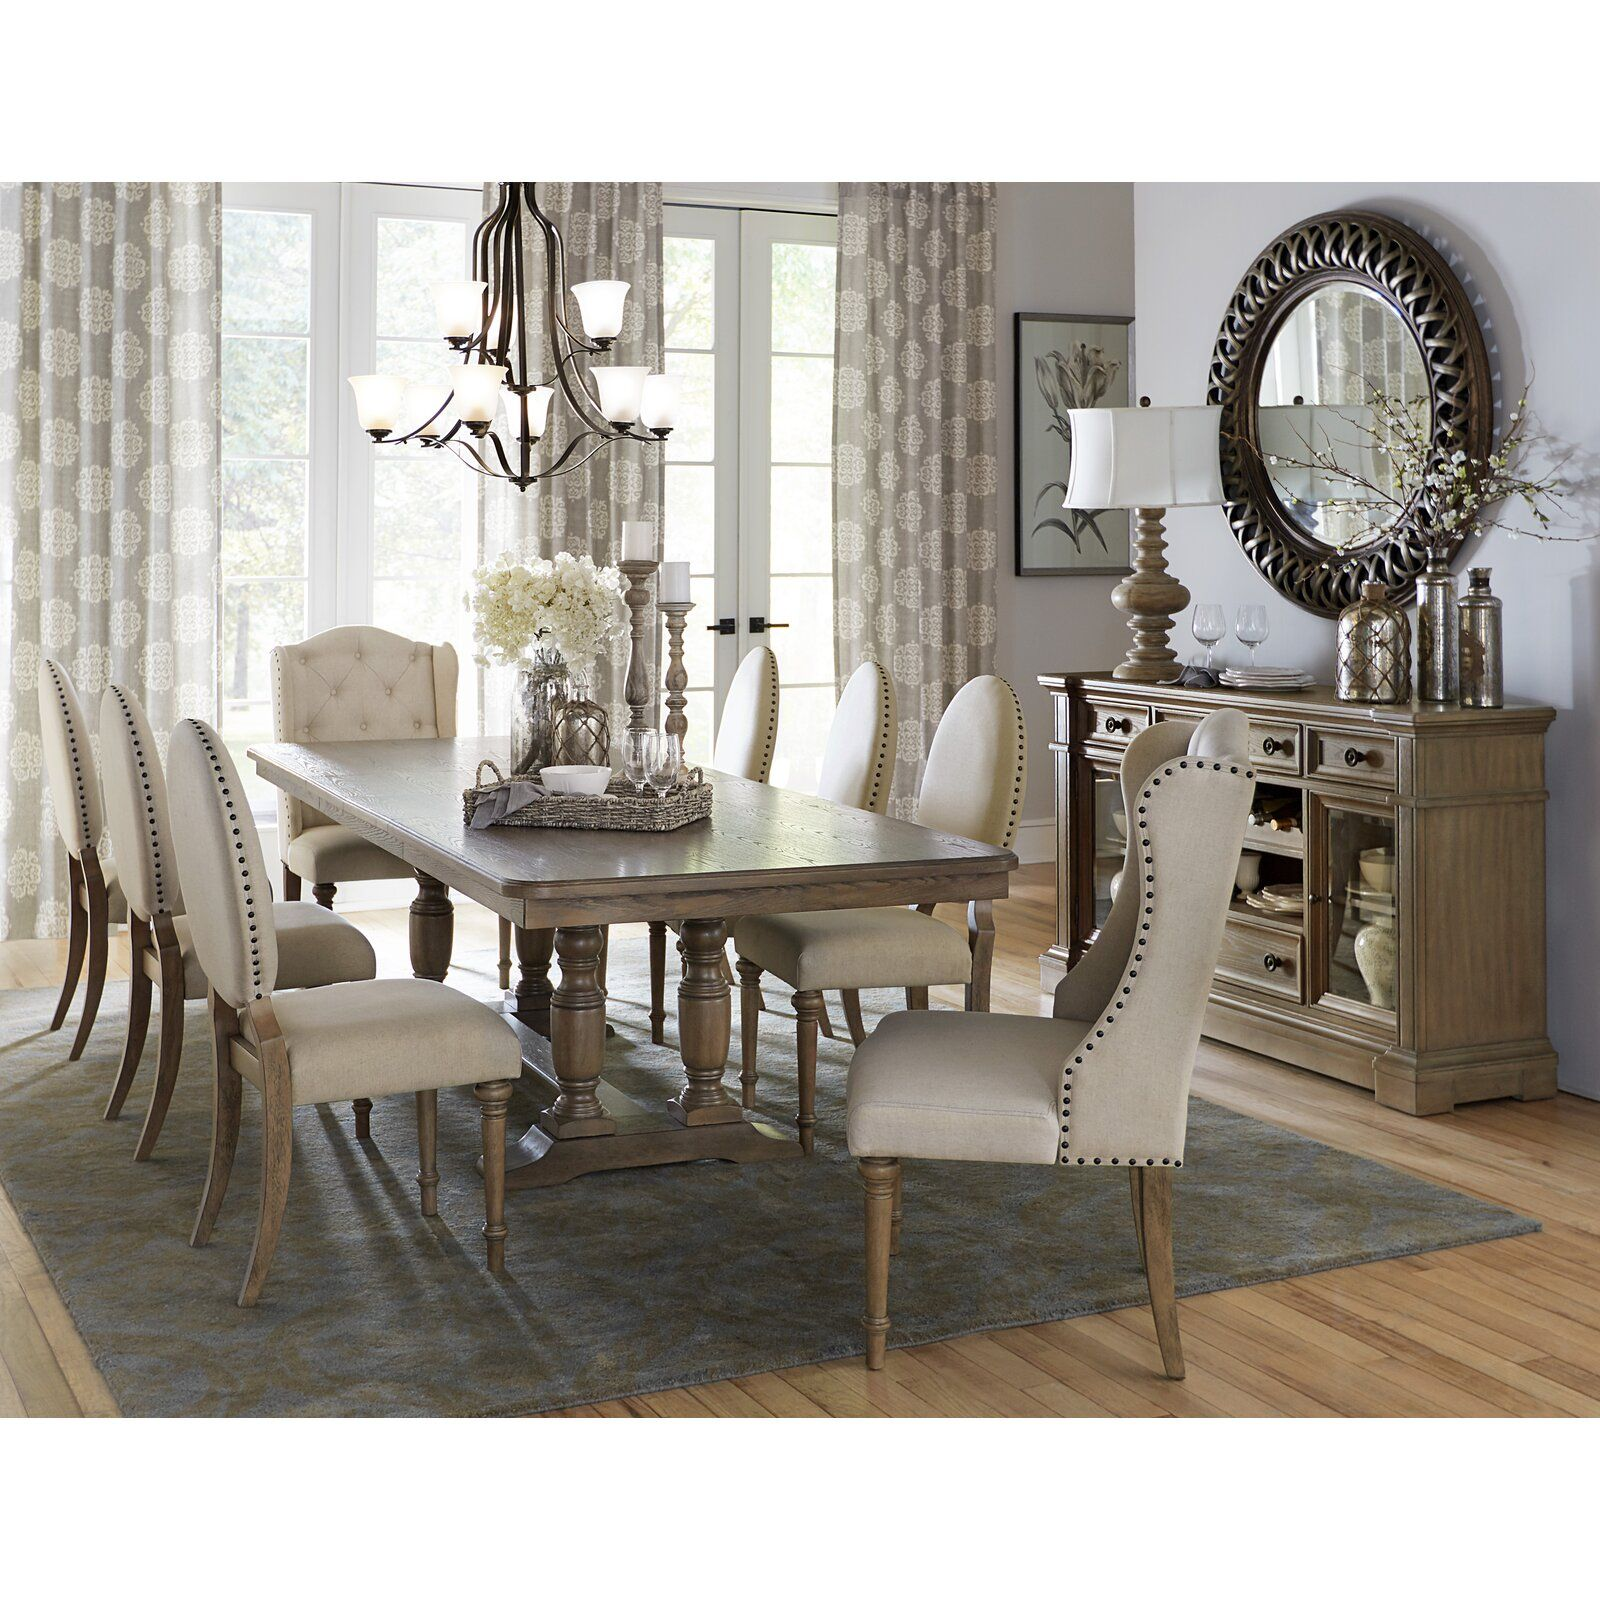 August Grove Lykens Sideboard Wayfair Dining Room Design